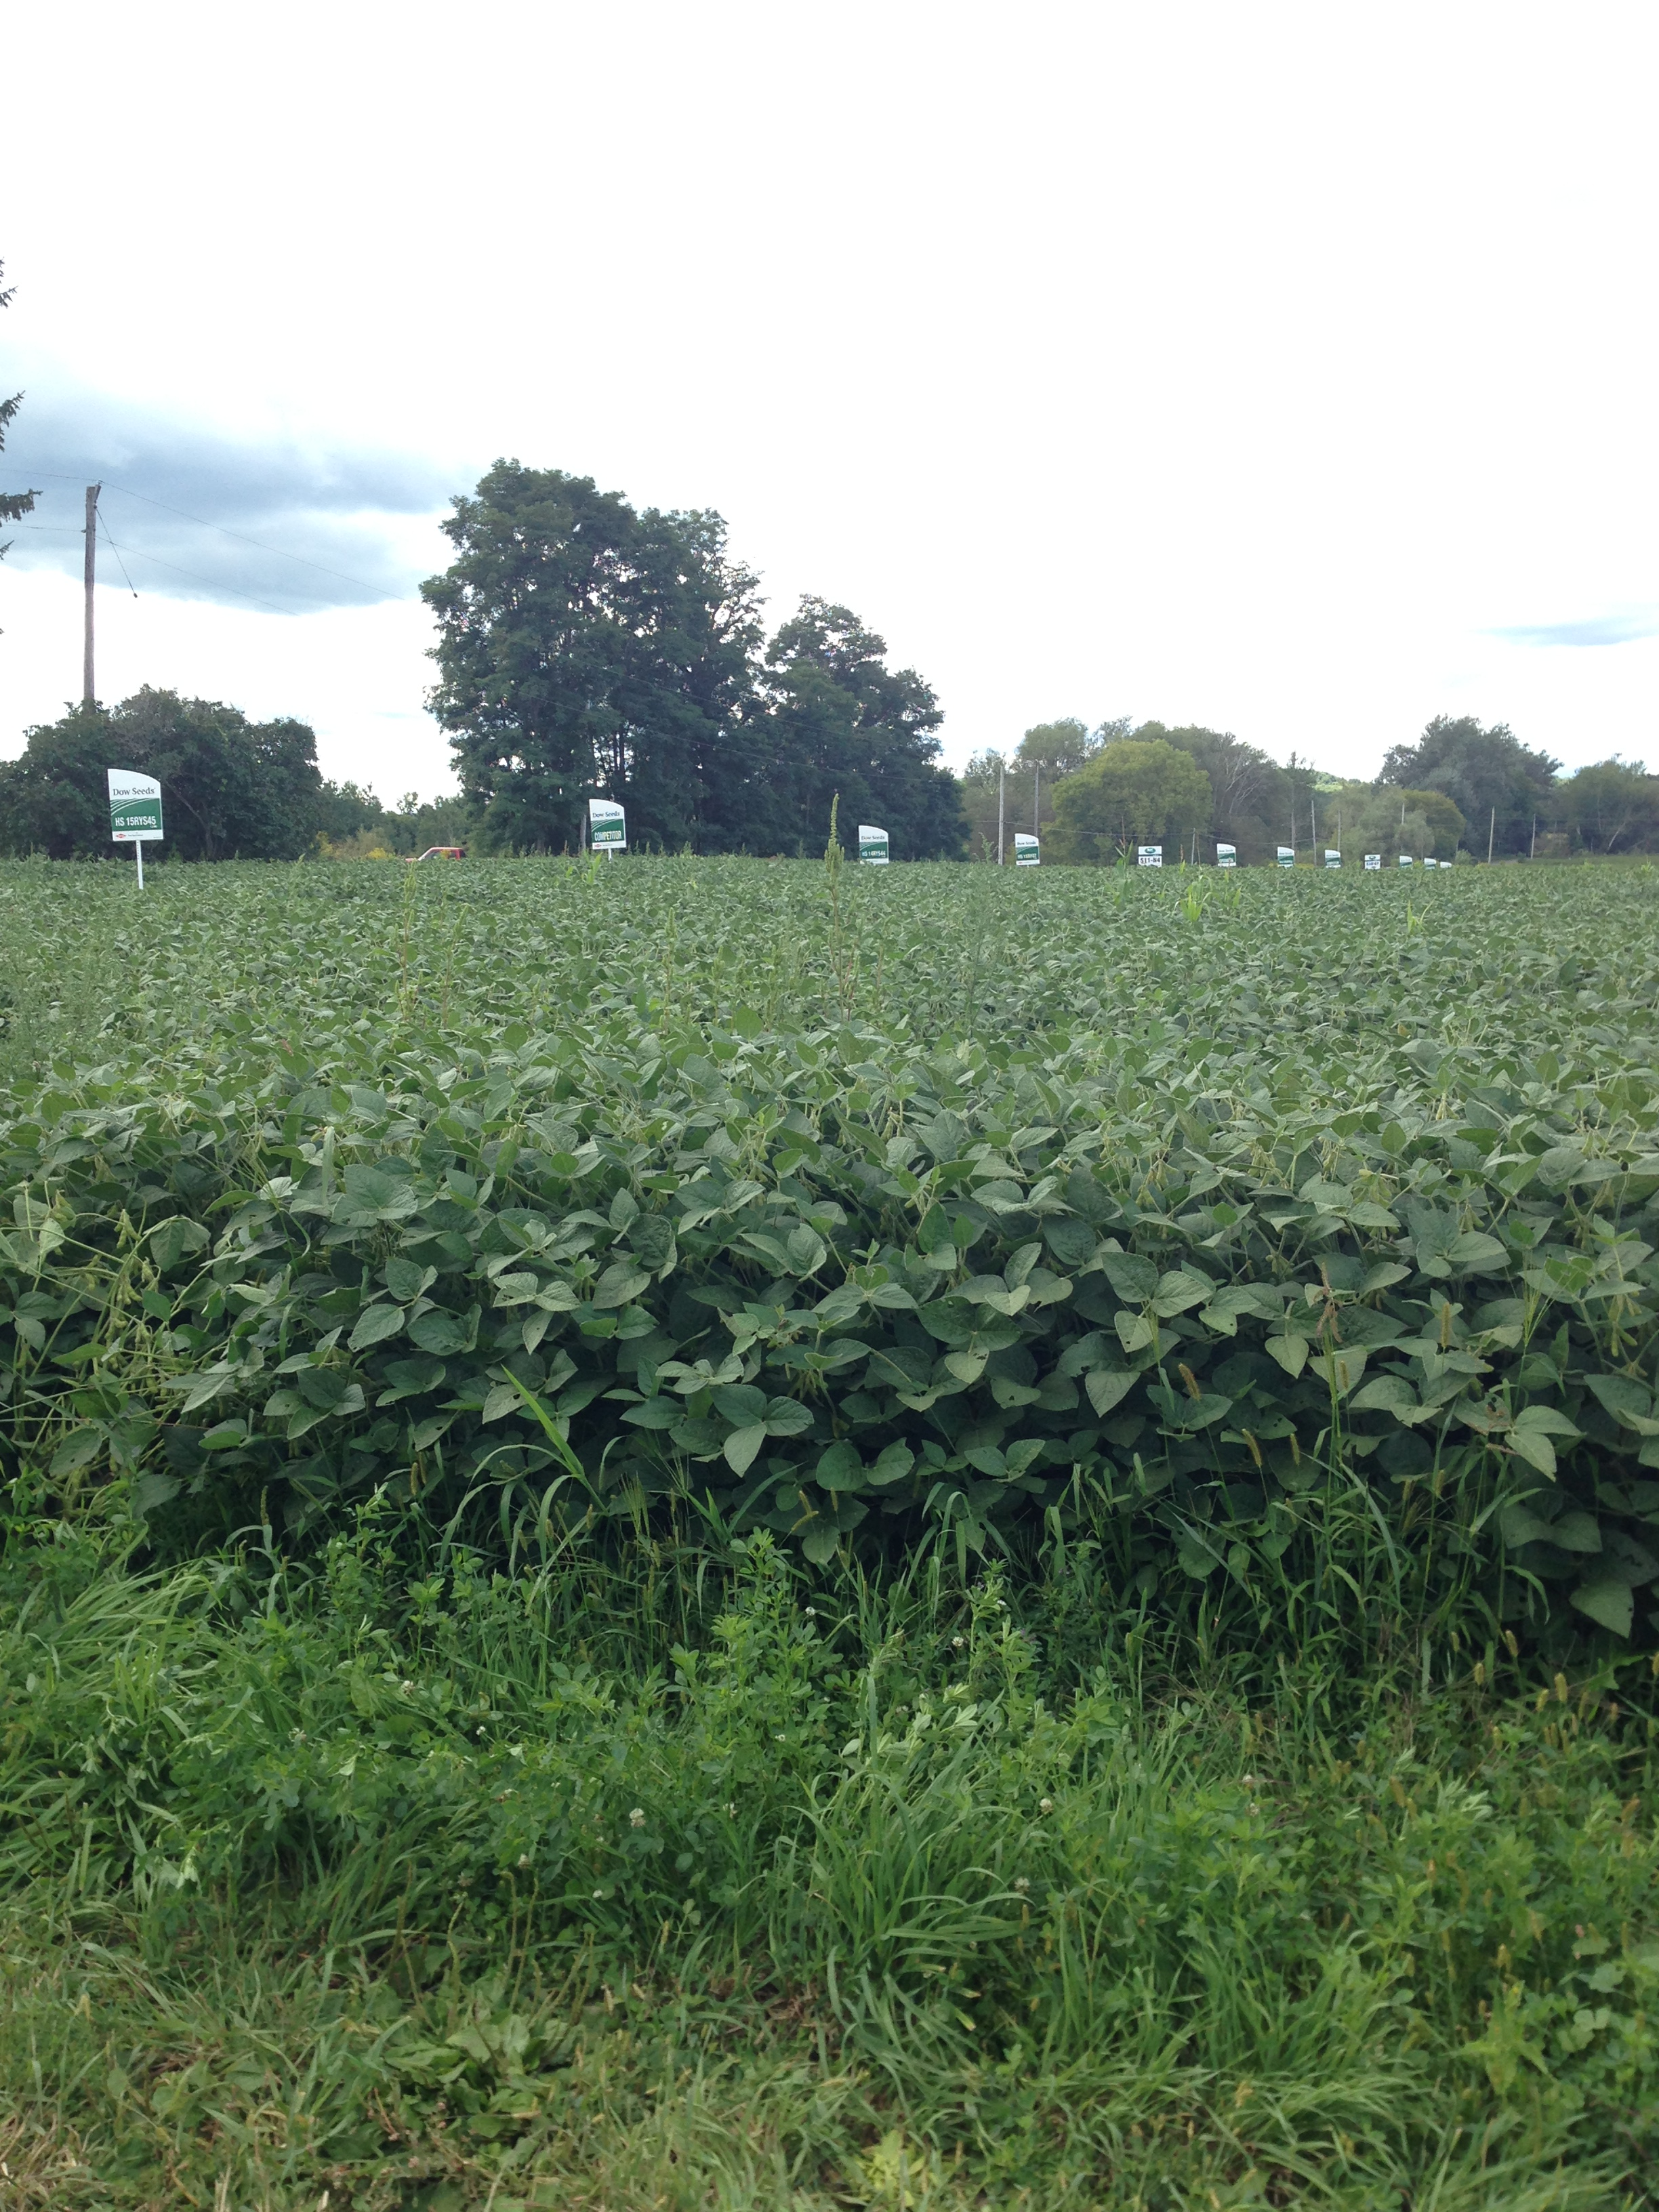 Dow Signs in Soybean field at Woof's Farm